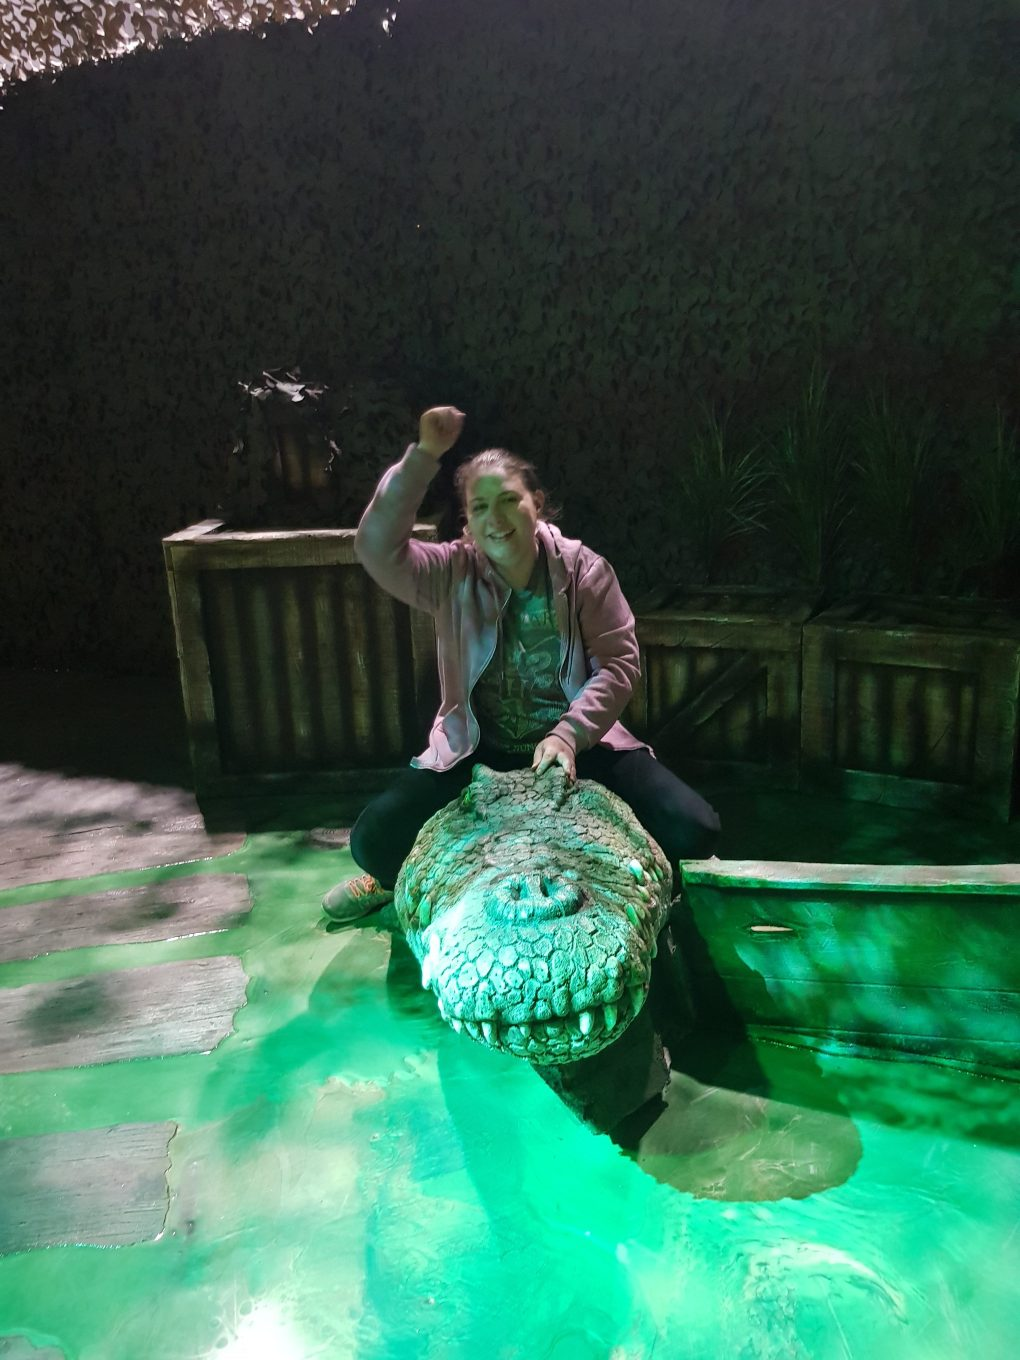 A girl wearing a grey shirt and purple hoodie riding a crocodile figure.